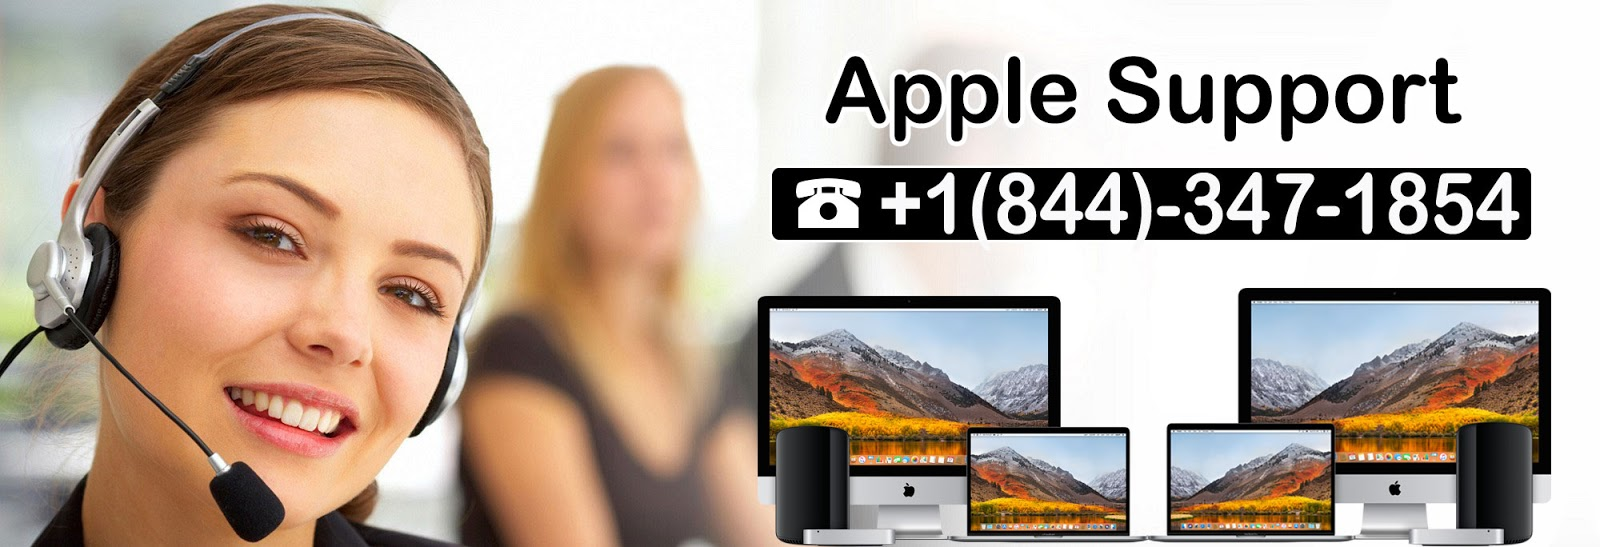 apple support phone number, apple technical support phone number